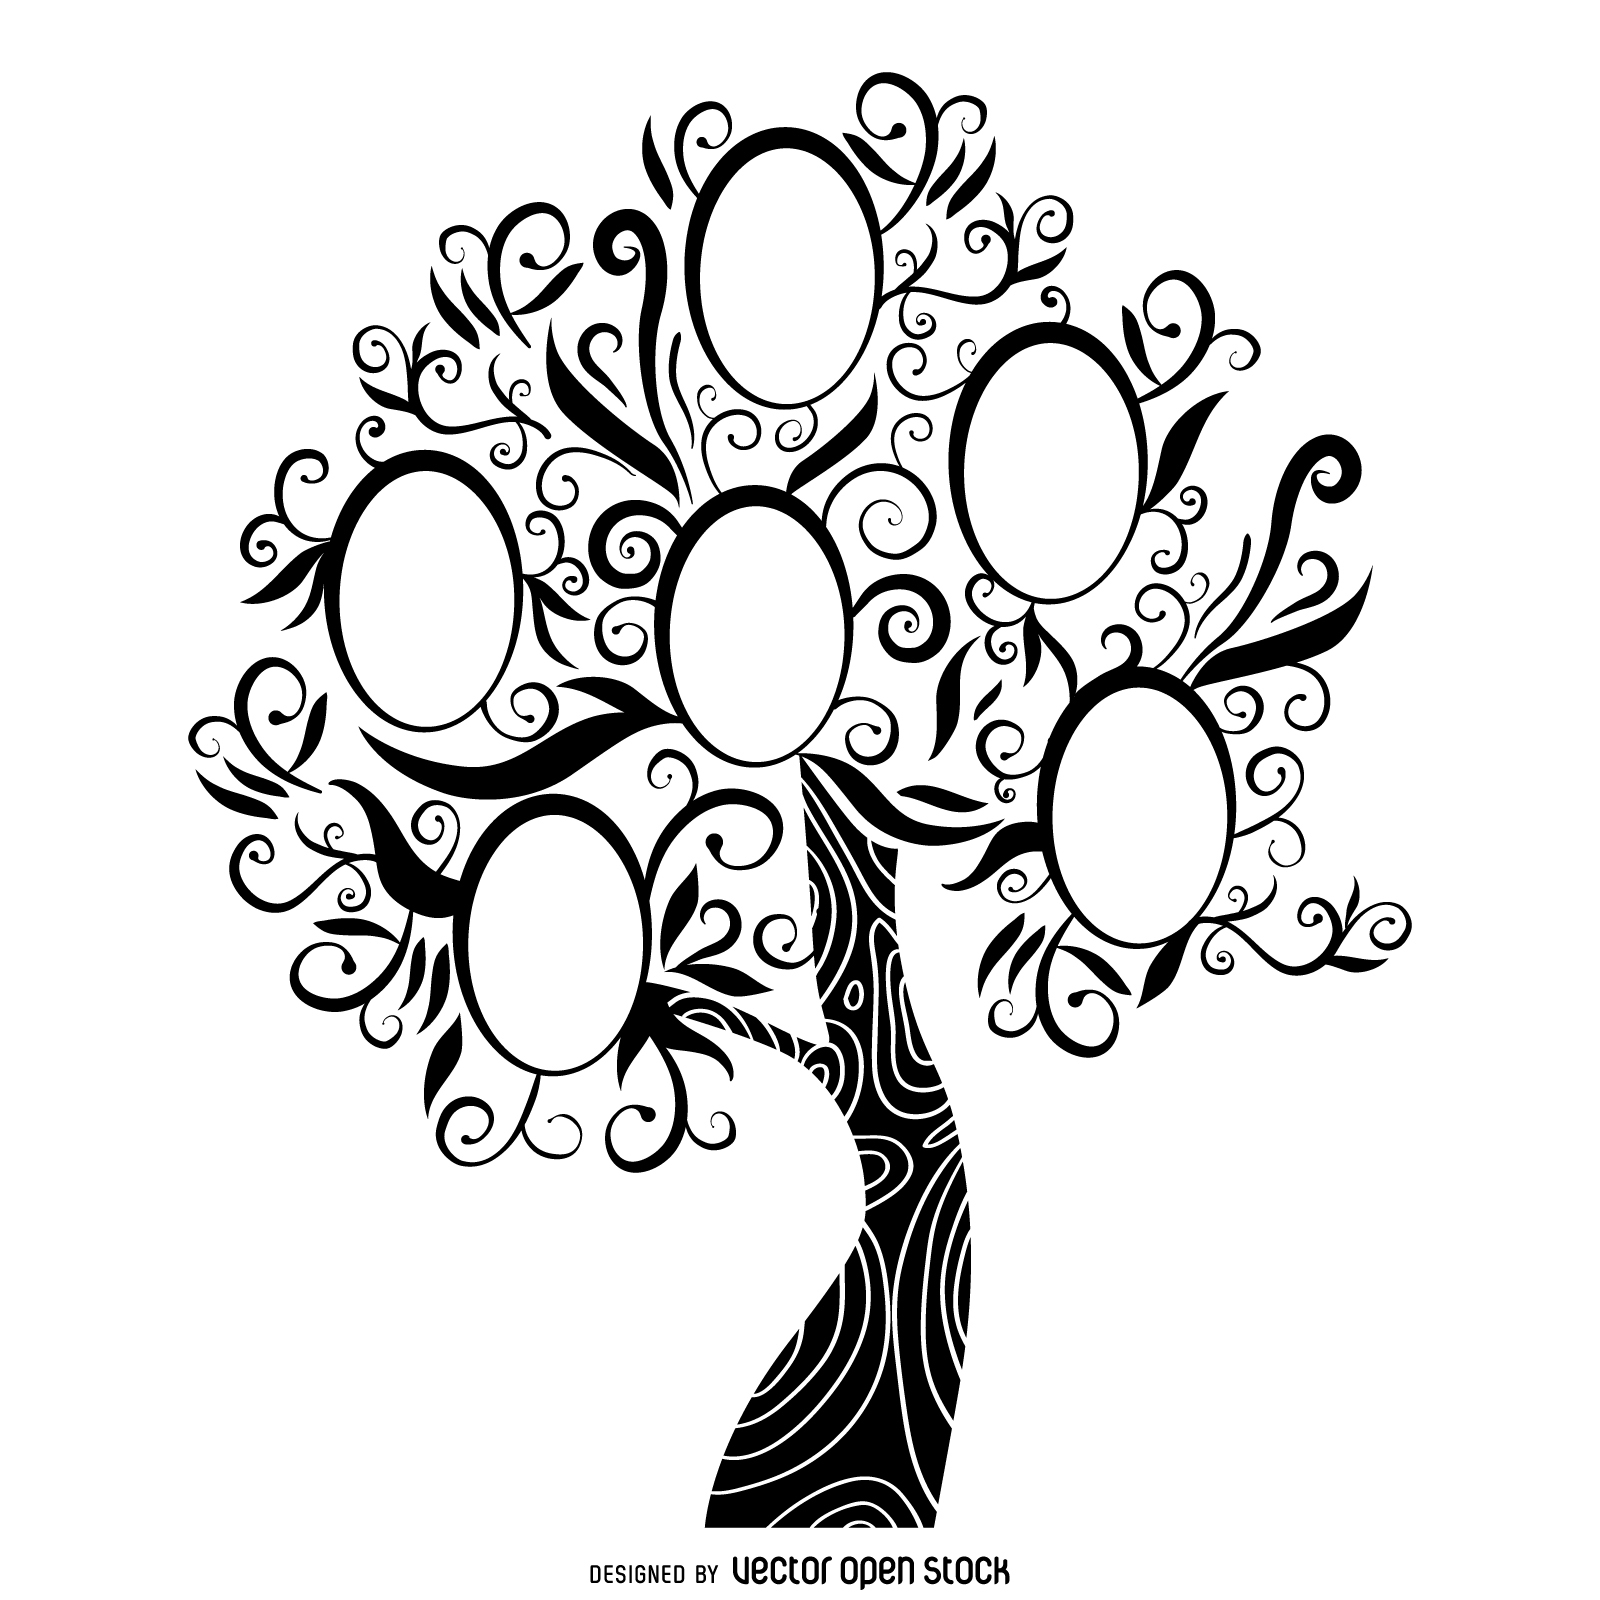 Family tree clipart in black and white image freeuse library Family Tree Clipart Black And White | Free download best Family Tree ... image freeuse library